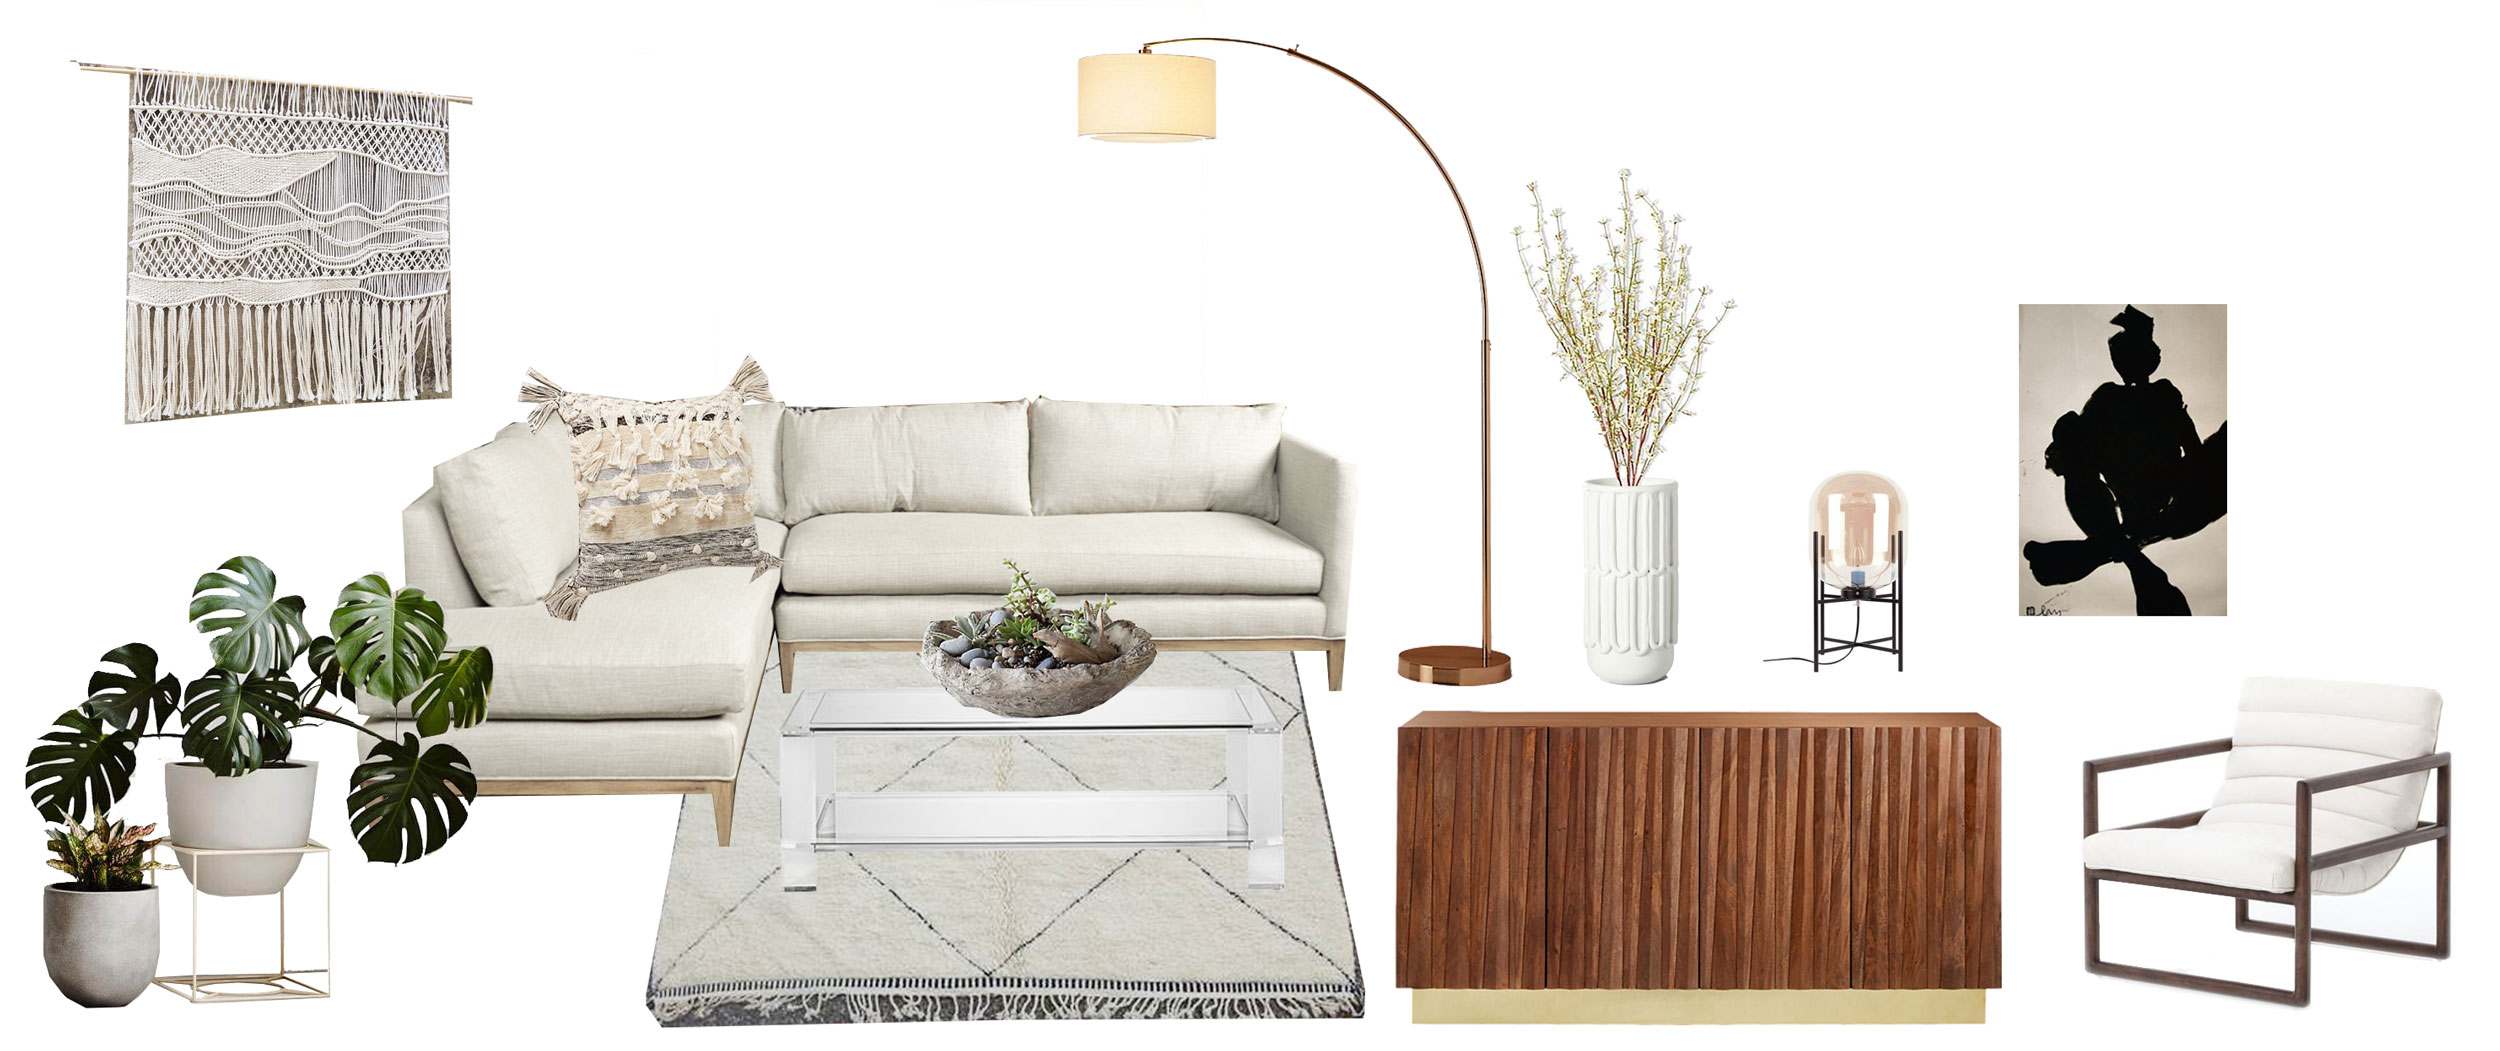 Macramé:  etsy.com/shop/WallKnot  | Sofa:  mecox.com  | Pillow: Anthropologie | Coffee Table:  Interlude Ava  | Succulent Planter: Terrain | Beni Ourain Rug:  Moroccan Rugs USA  | Big Dipper Arc Lamp:  CB2 | Vase:  Target  | Oda Small Capsule Table Lamp:  France and Son  | Peak Media Credenza:  CB2  | Nude by Michael Lentz:  Artfully Walls  | Fitz Chair:  France and Son